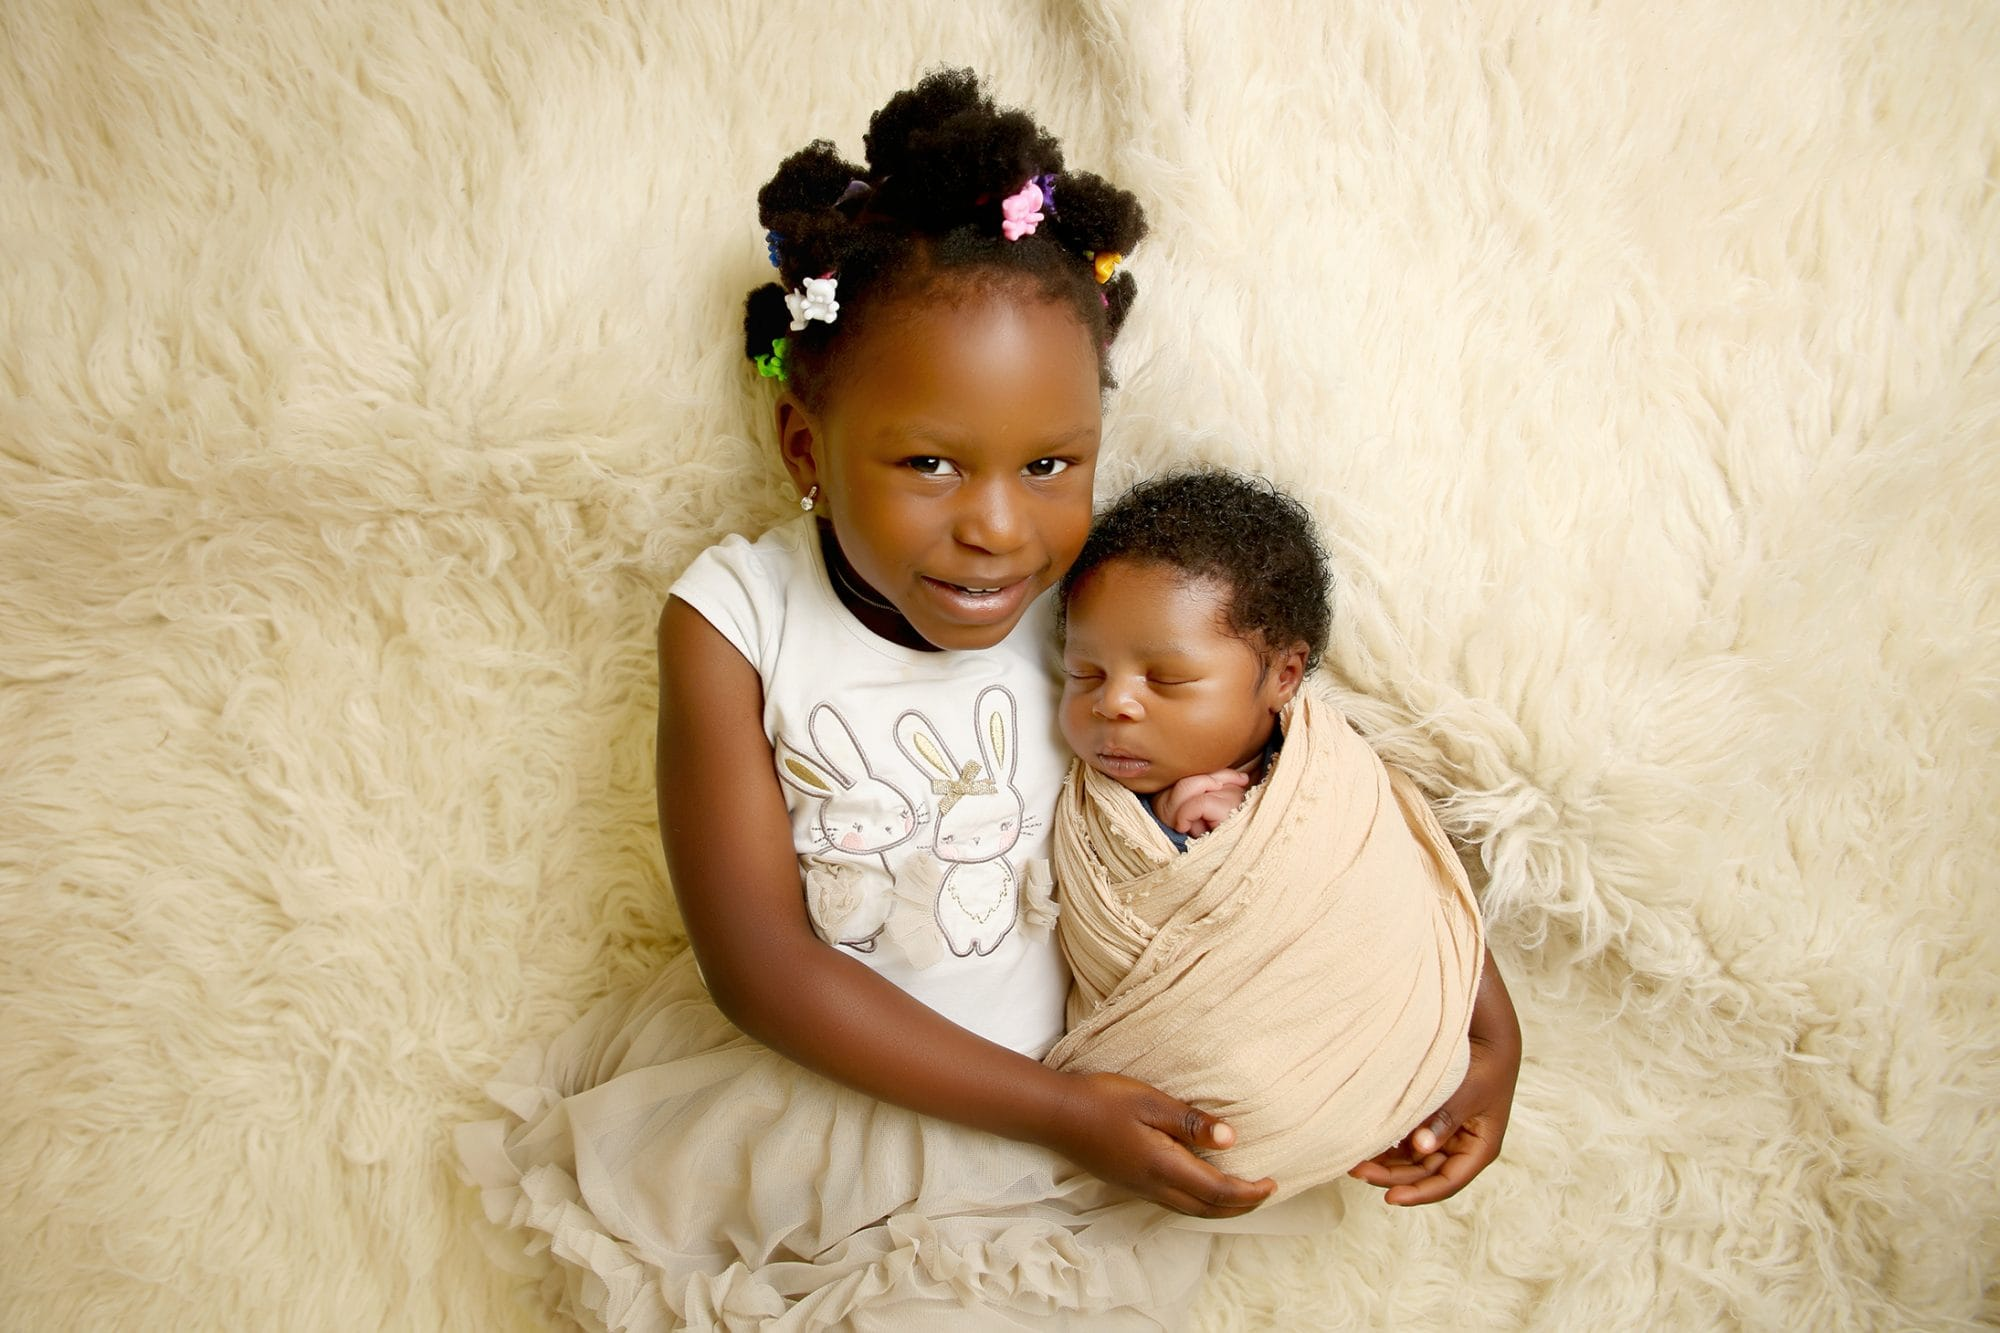 a nigerian girl laid down looking at the camera while holding her newborn baby brother who is wrapped up and asleep